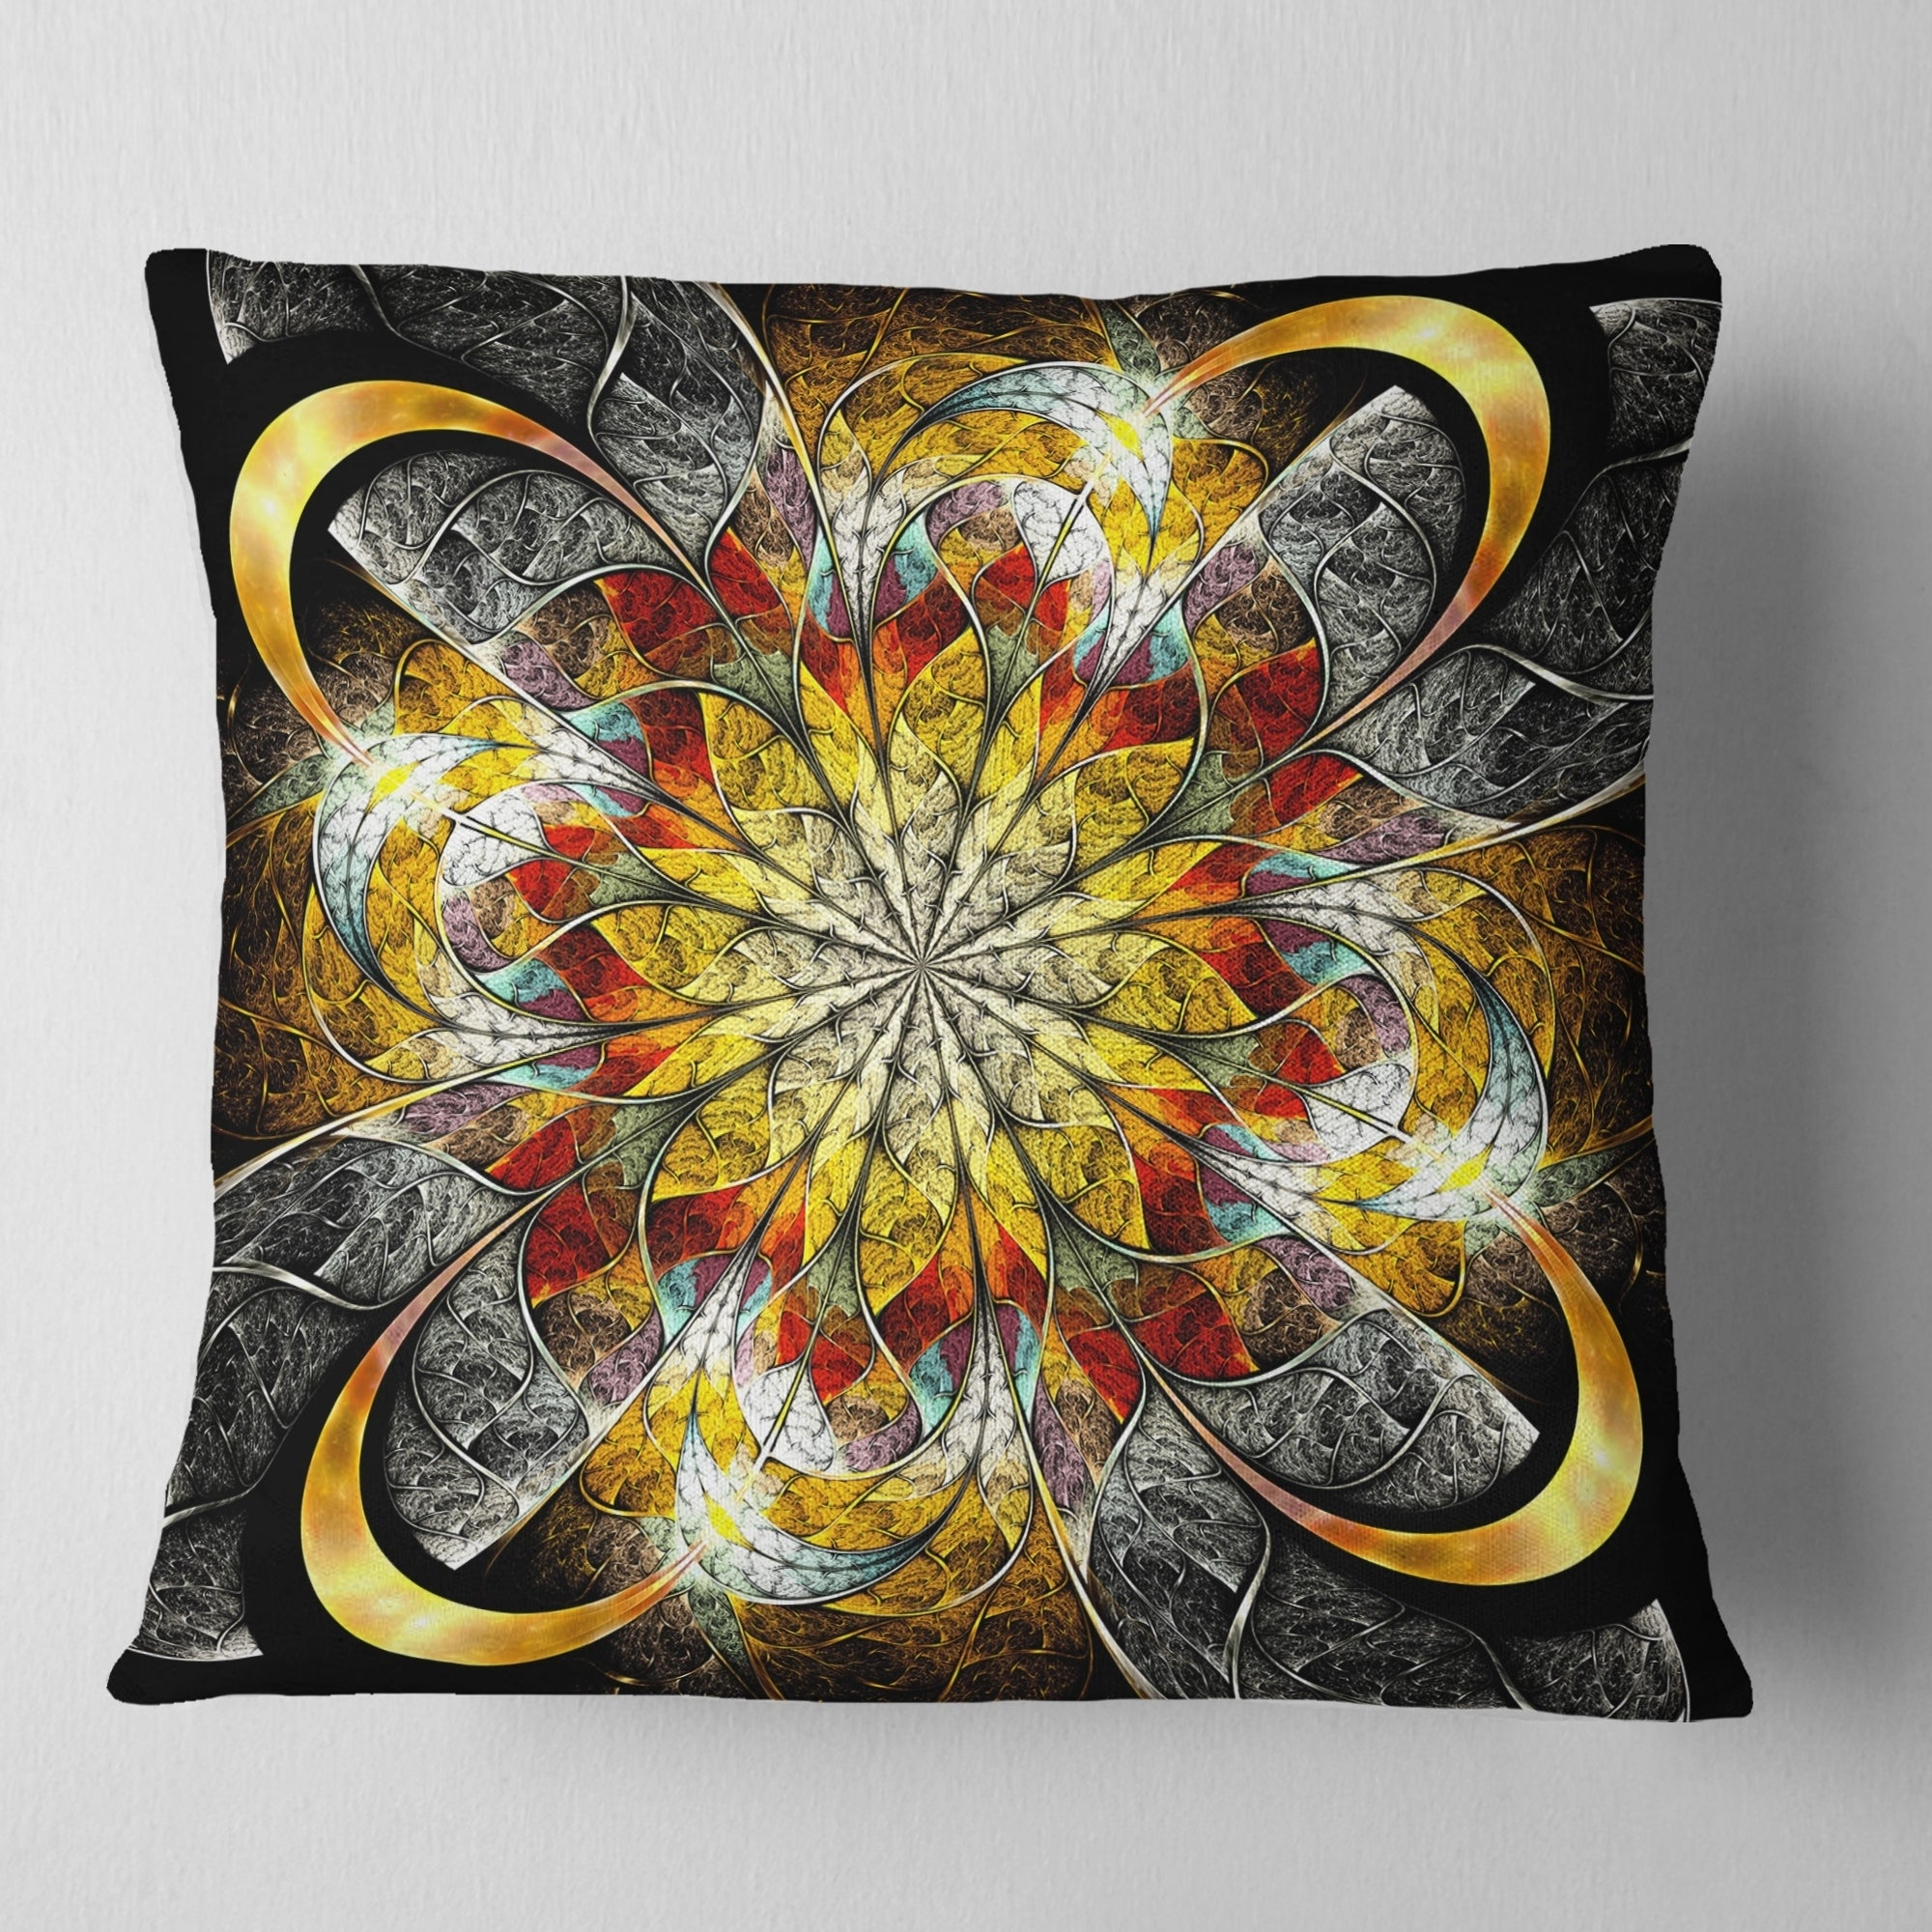 Insert Printed On Both Side Sofa Throw Pillow 12 In Designart Cu8892 12 20 Symmetrical Golden Flower Floral Lumbar Cushion Cover For Living Room X 20 In In Home Décor Home Kitchen